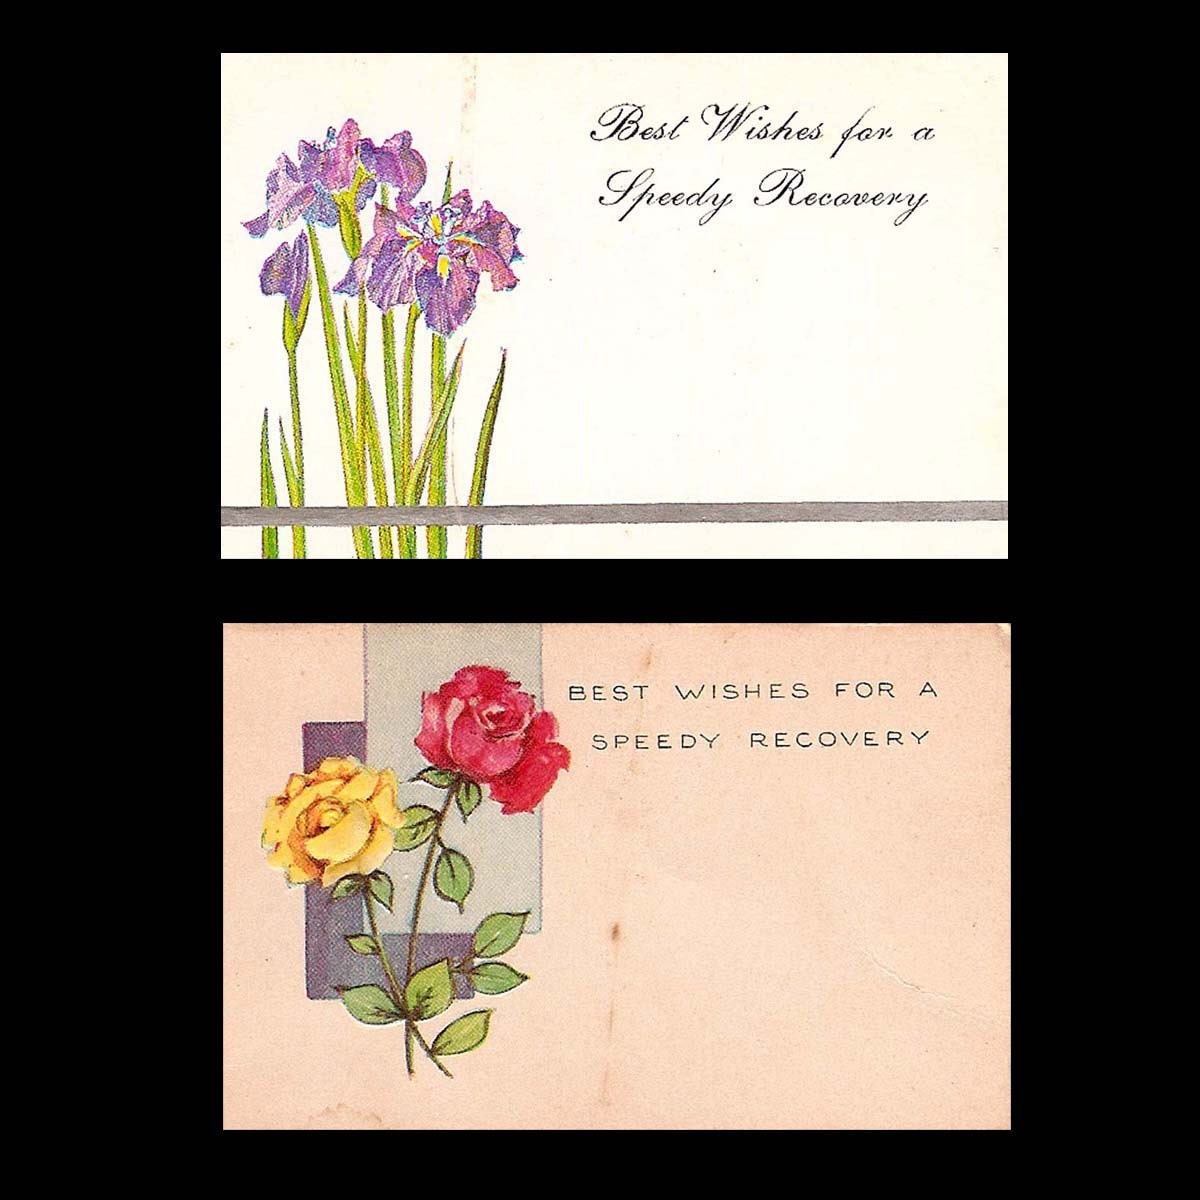 Vintage Floral Shop Gift Tags And Greetings Best Wishes From